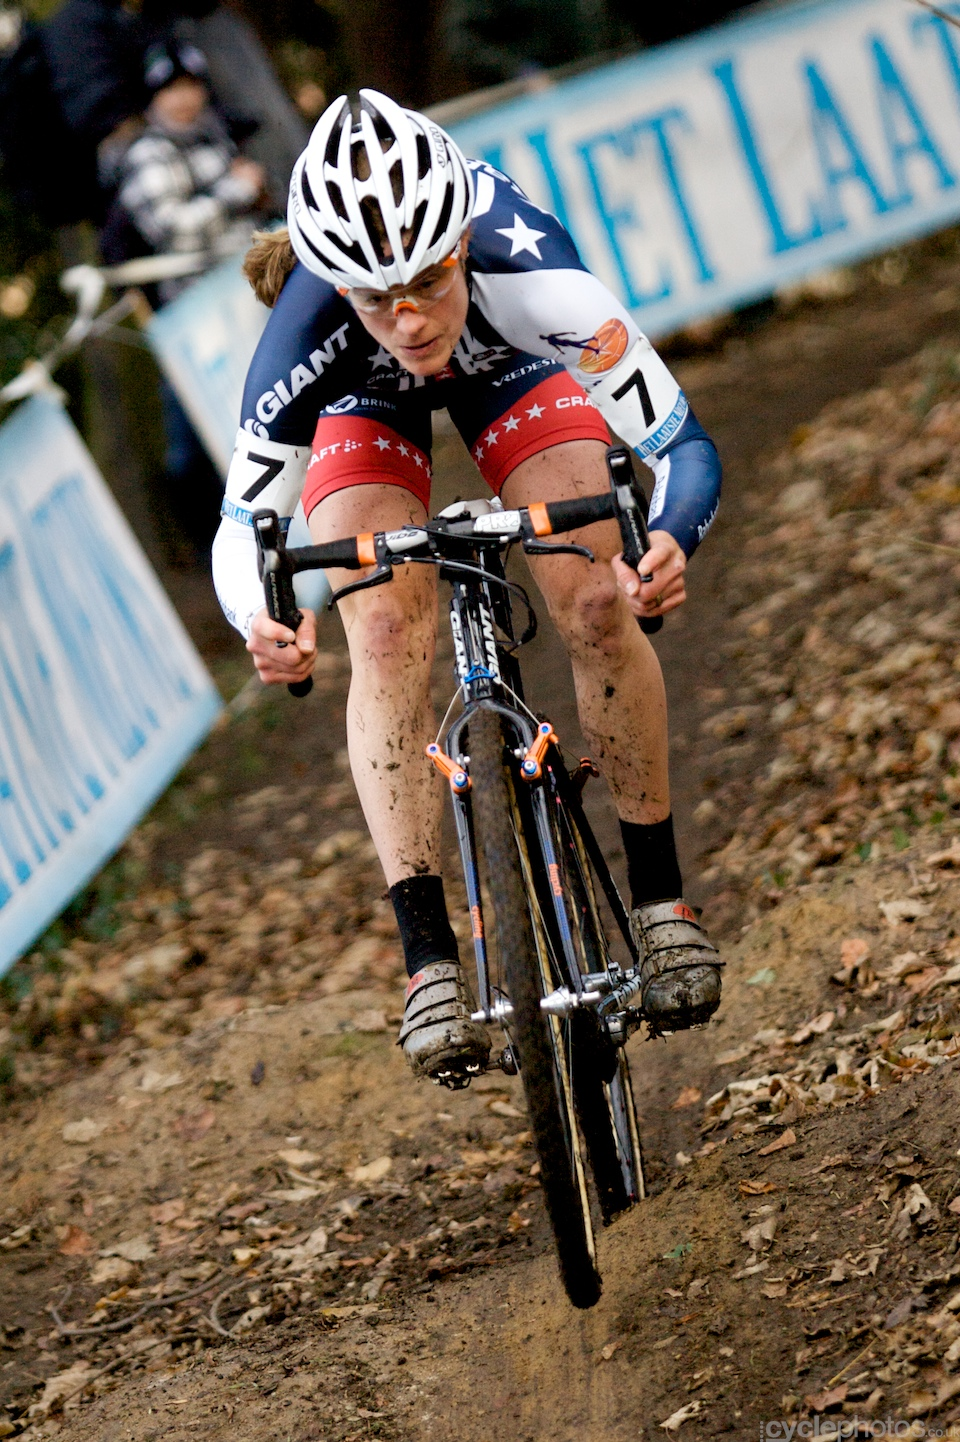 Katie Compton was fast on the climbs and the descents.